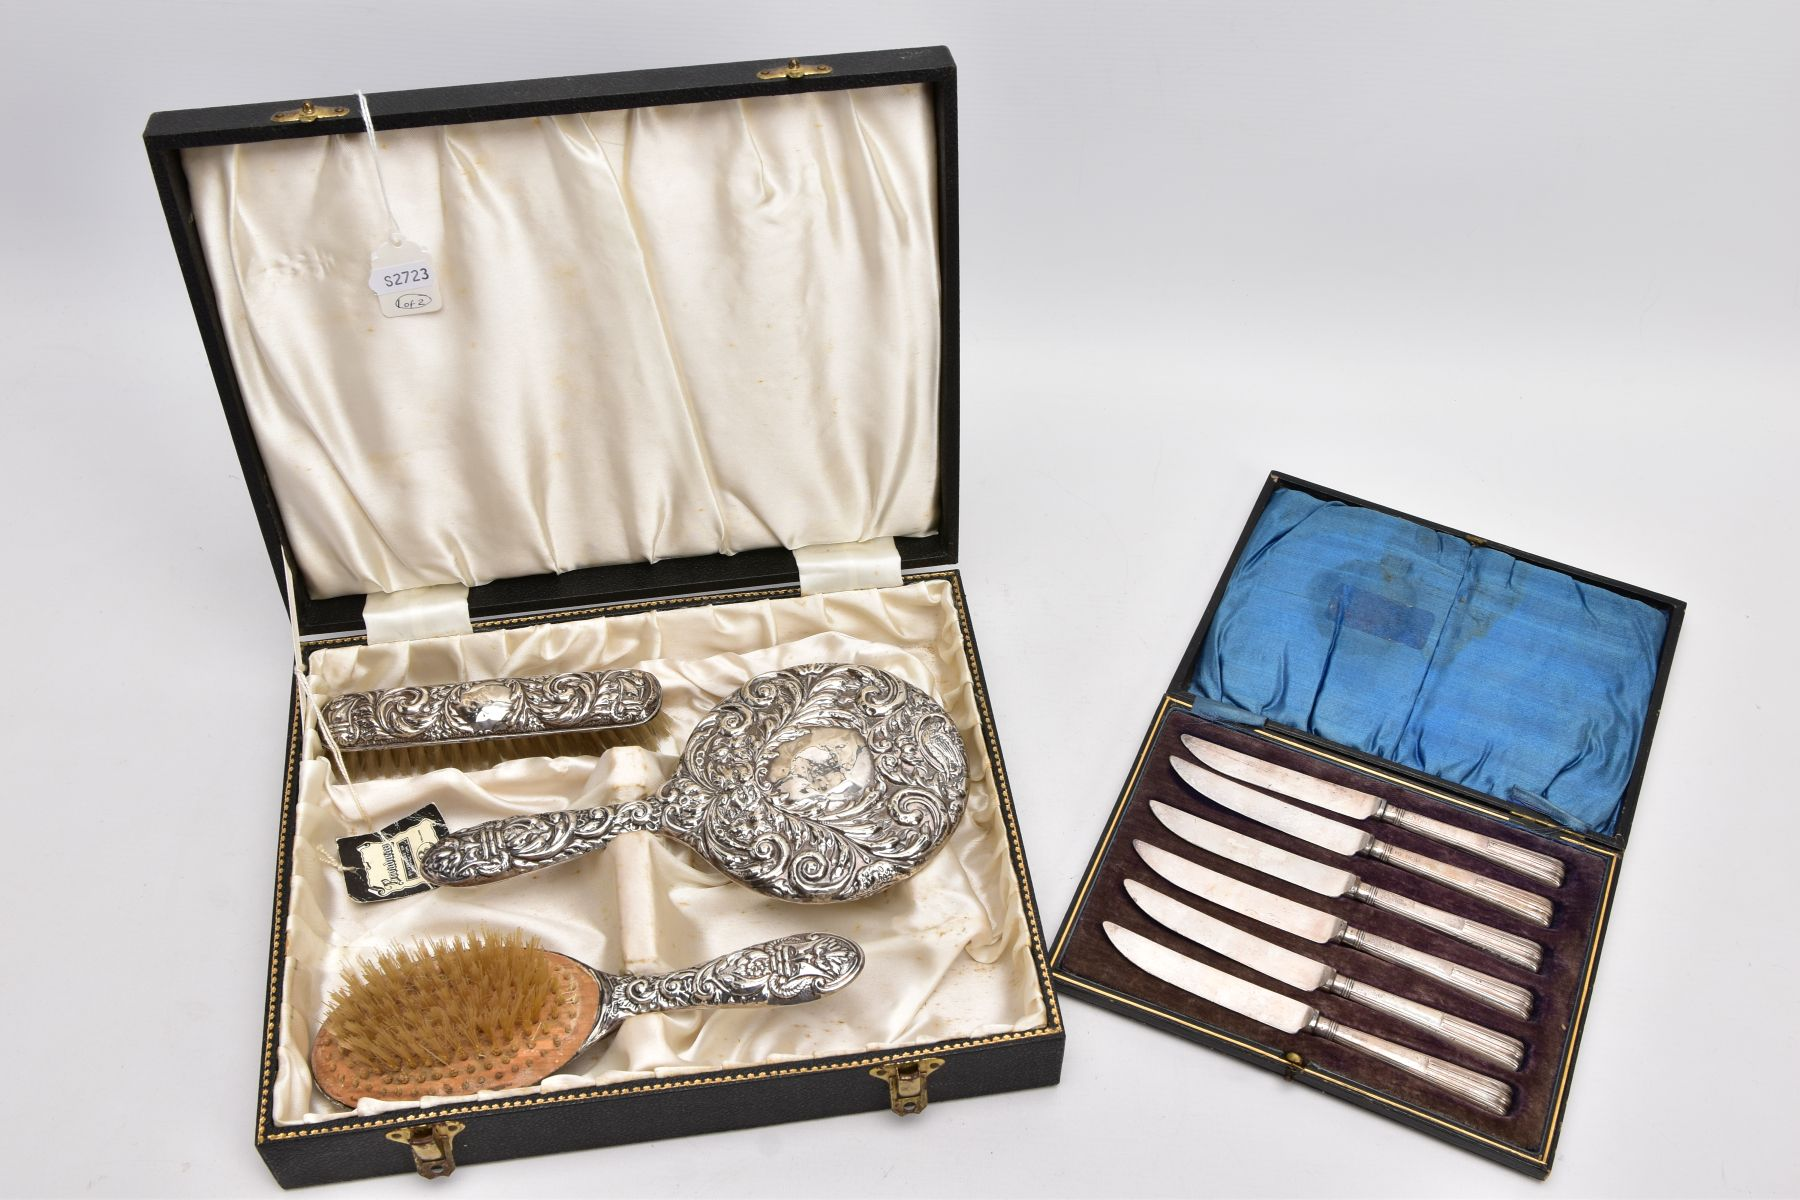 A CASED THREE PIECE SILVER VANITY SET AND A CASED SILVER HANDLED KNIFE SET, the black vanity case